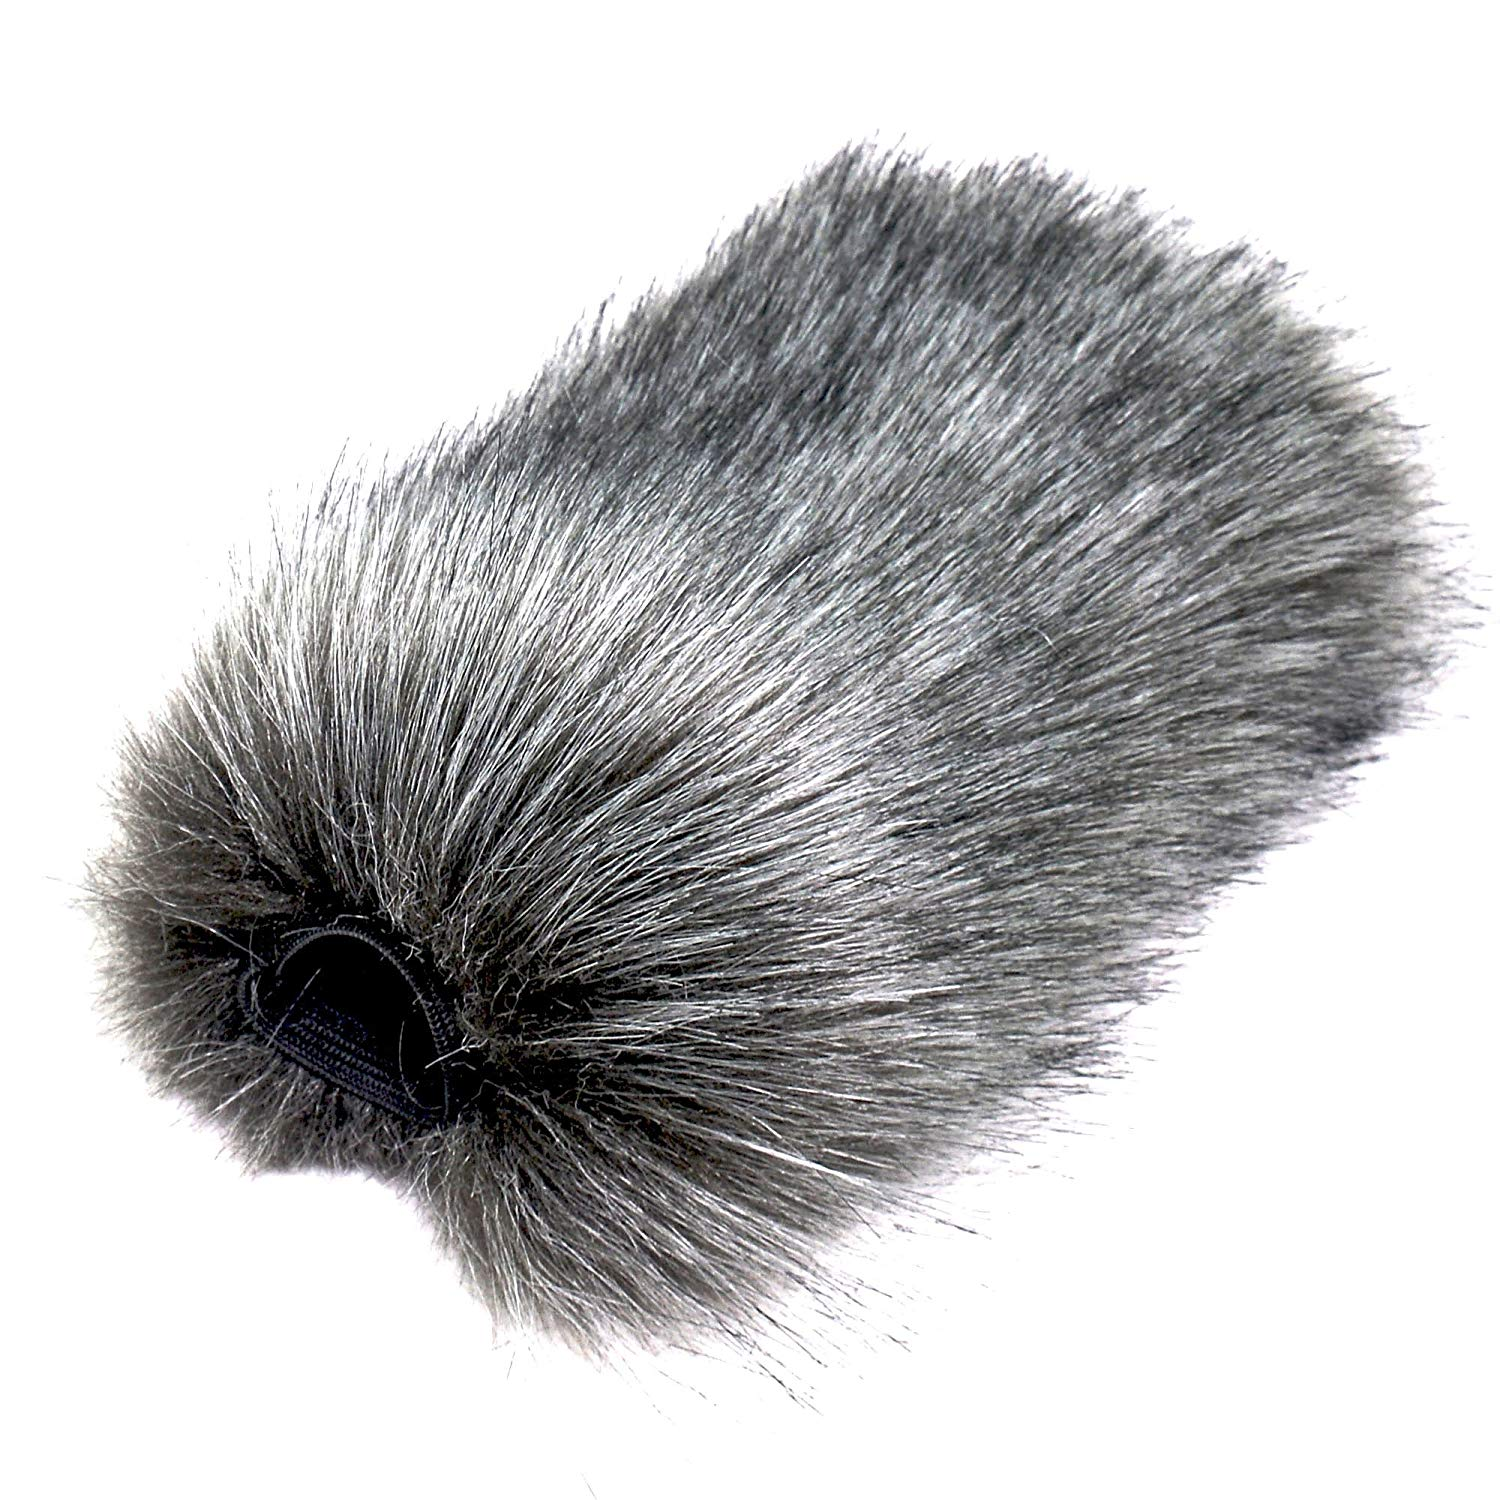 Bestshoot Outdoor Microphone Furry Windscreen Muff for MIC-01 MIC108 MIC-121 Stereo Microphone, TAKSTAR SGC-598, NW-598, SHENGGU SG209 SG108 & Similar Mics (large)